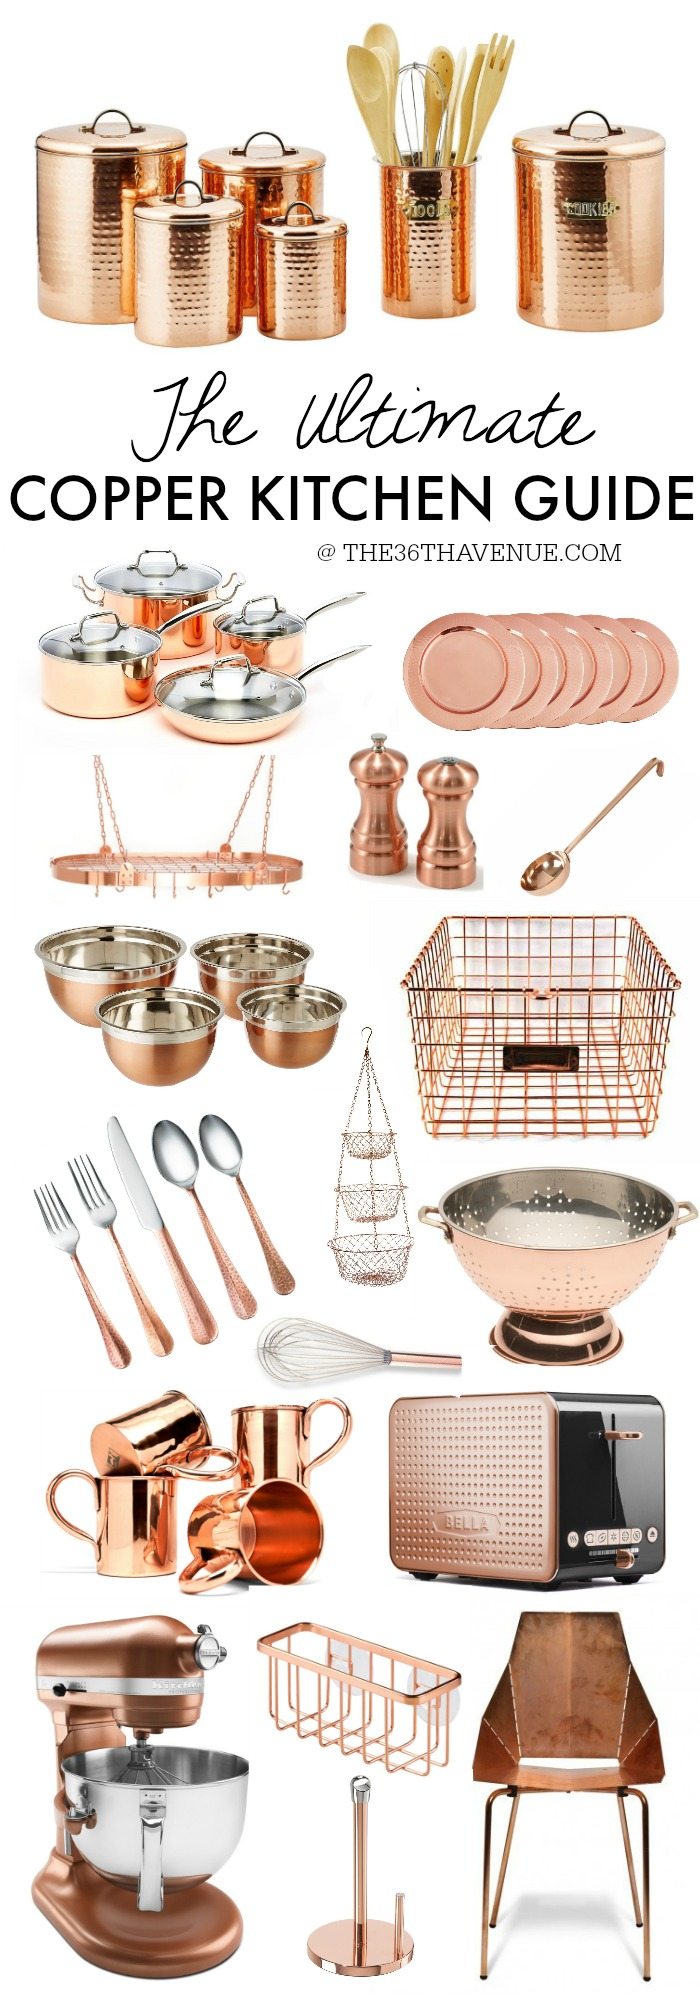 The Ultimate Copper Kitchen Guide at the36thavenue.com